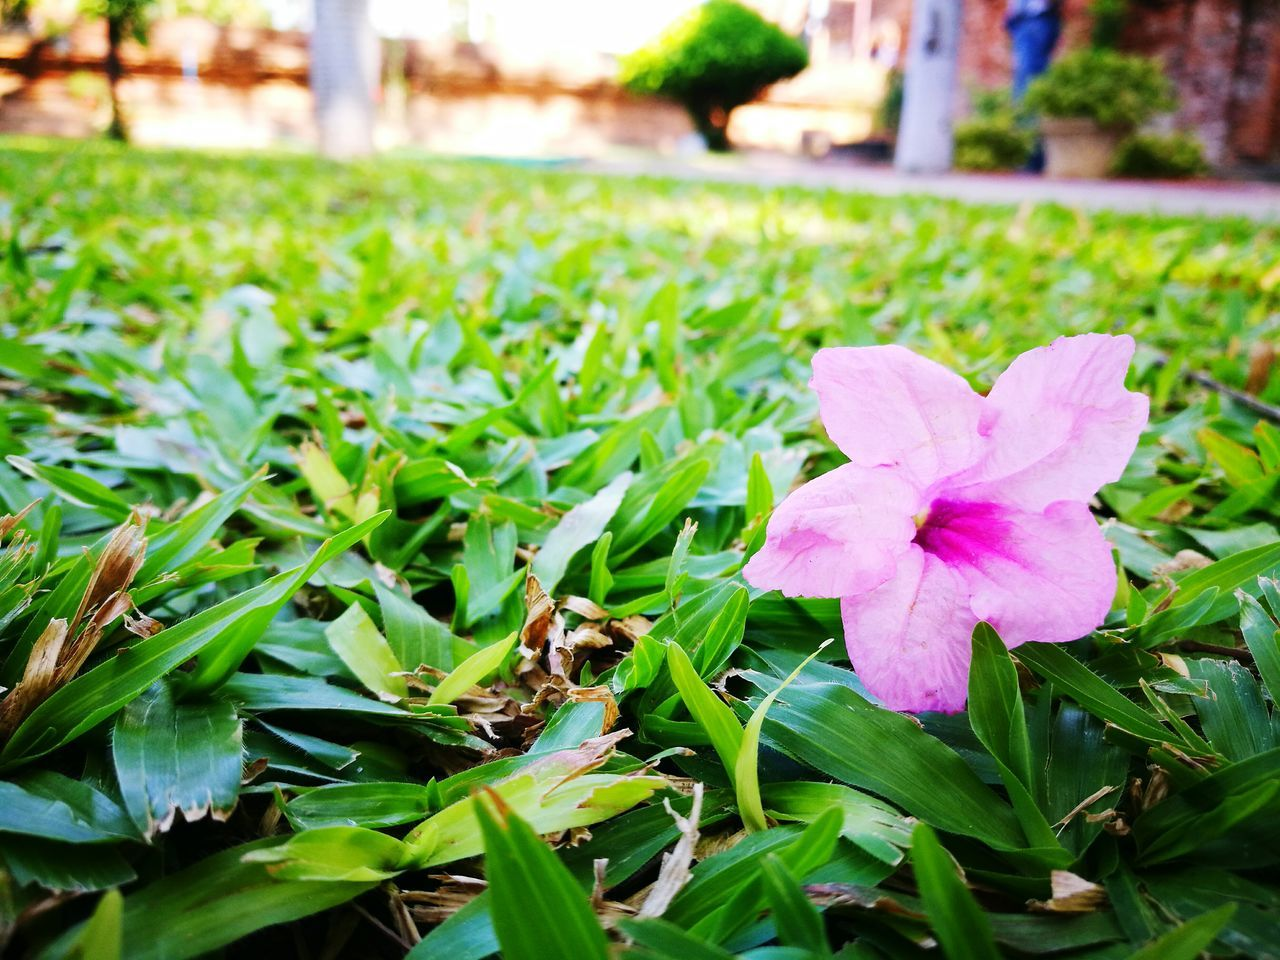 flower, beauty in nature, petal, nature, green color, growth, freshness, fragility, flower head, day, close-up, leaf, plant, focus on foreground, grass, outdoors, no people, pink color, blooming, periwinkle